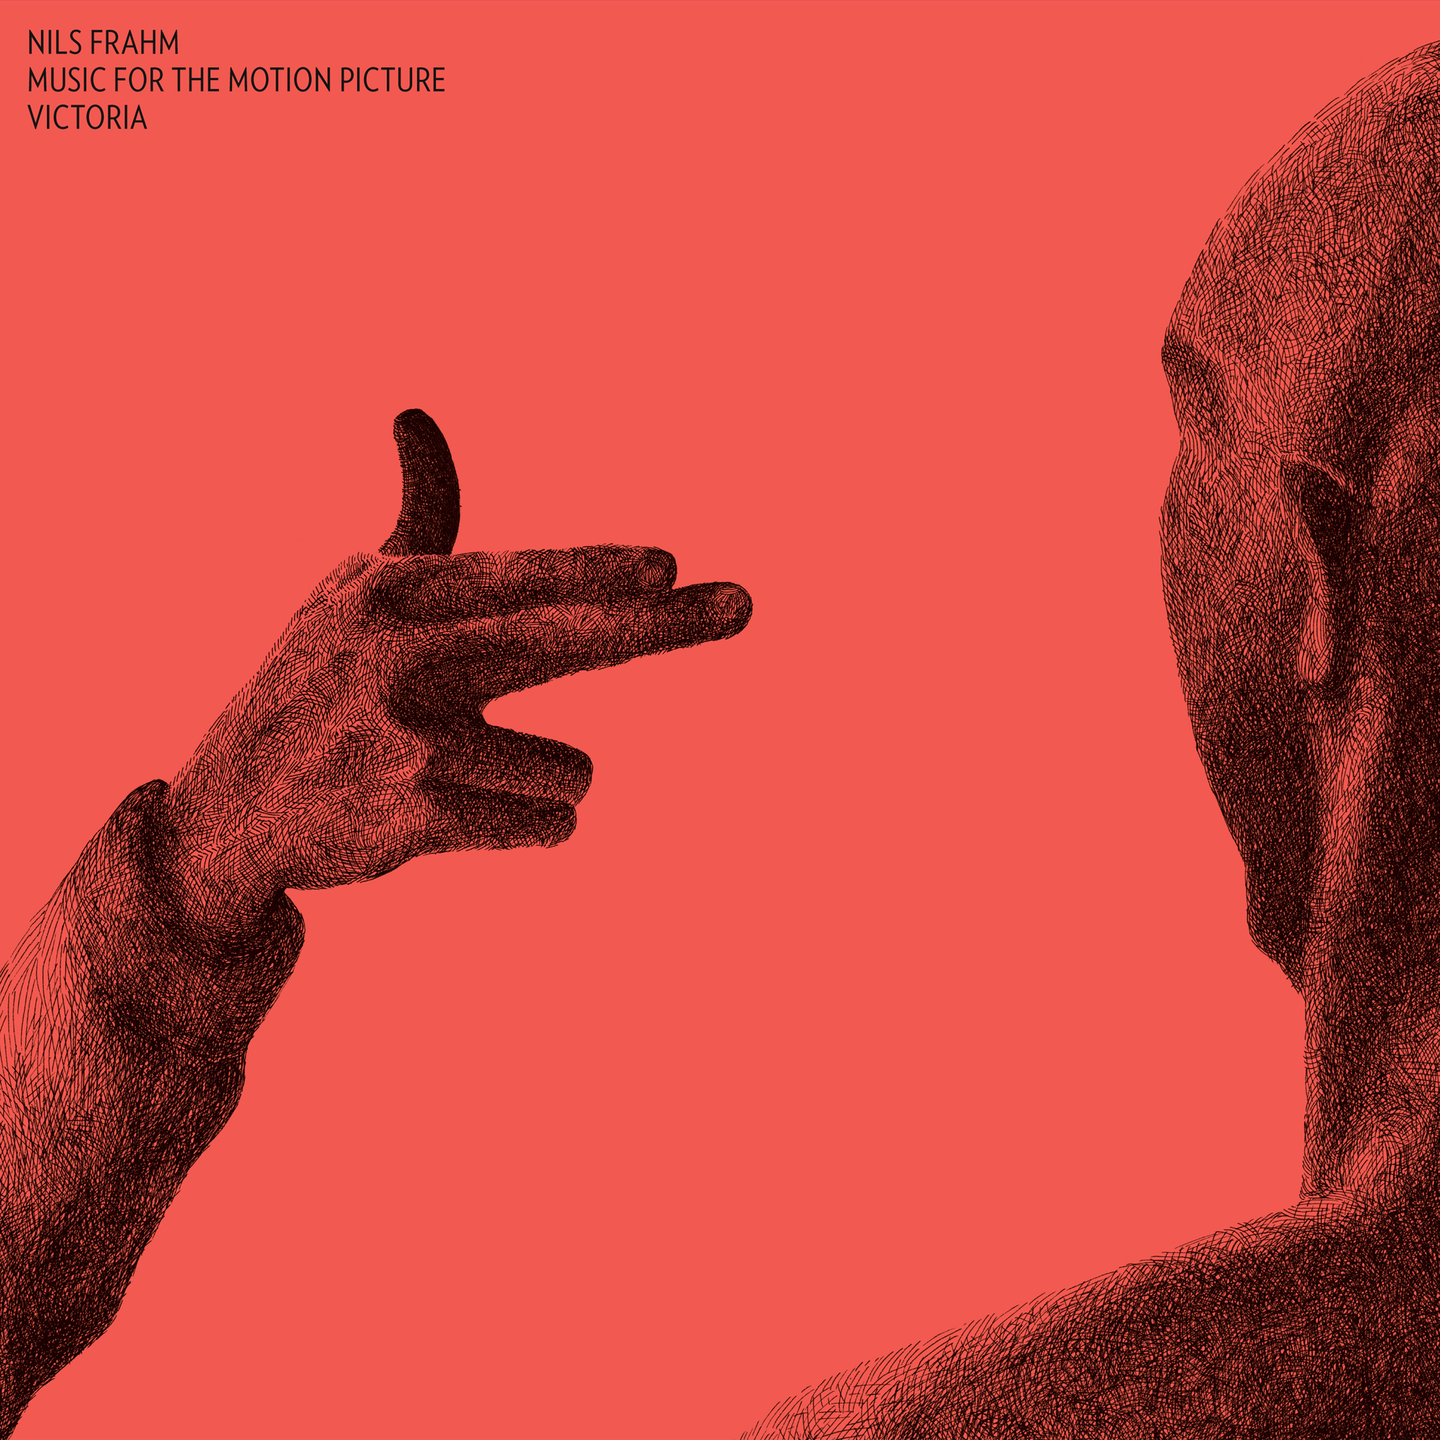 Music For The Motion Picture Victoria By Nils Frahm